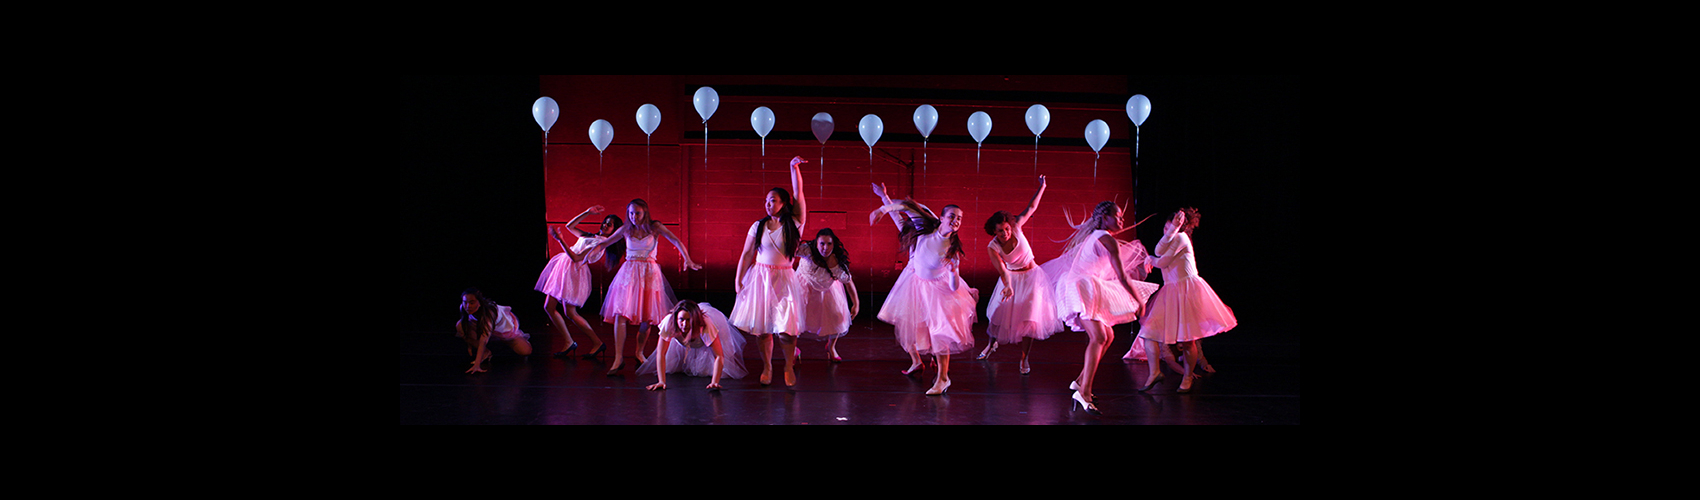 Glow Up — Choreography: Lucie Baker / Photo: Tim Summers